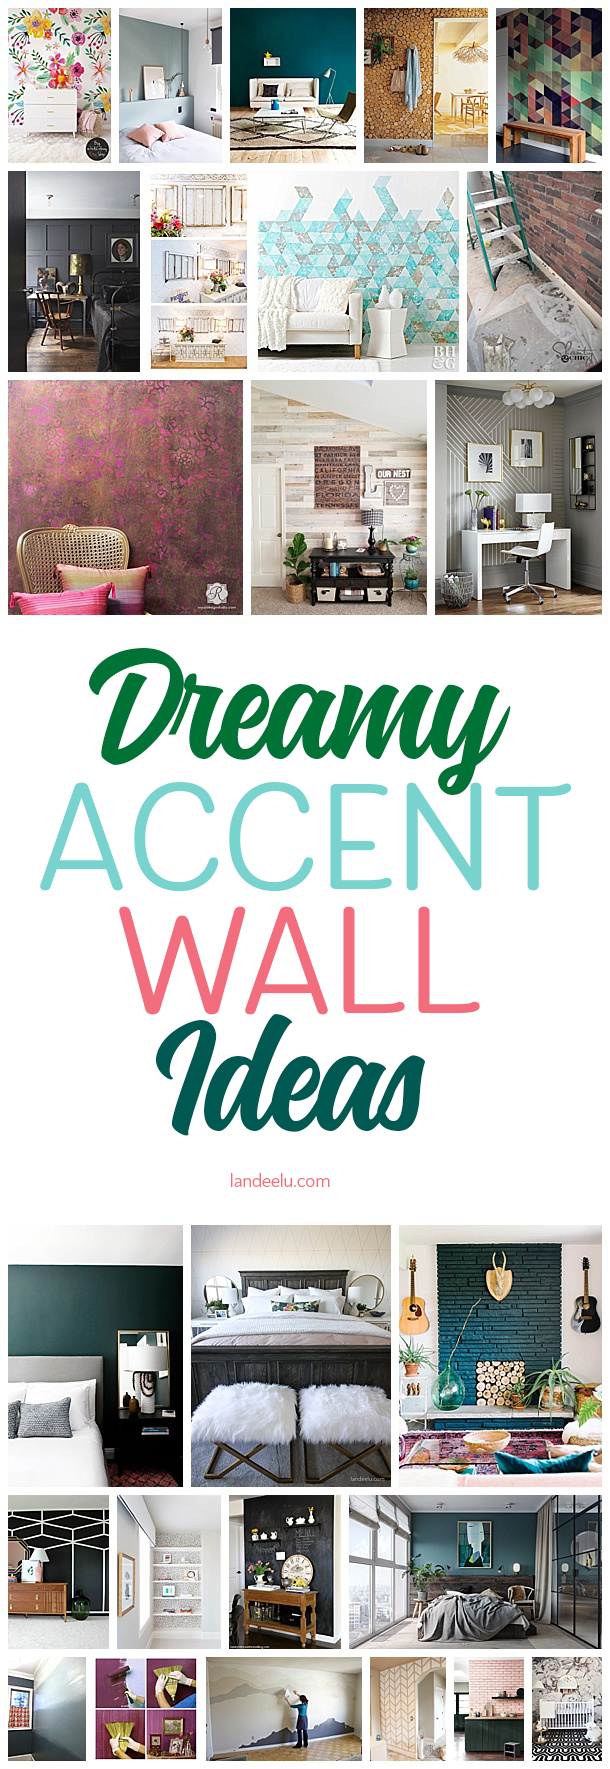 These accent wall ideas are amazing! I've been looking for ideas to do in our master bedroom.